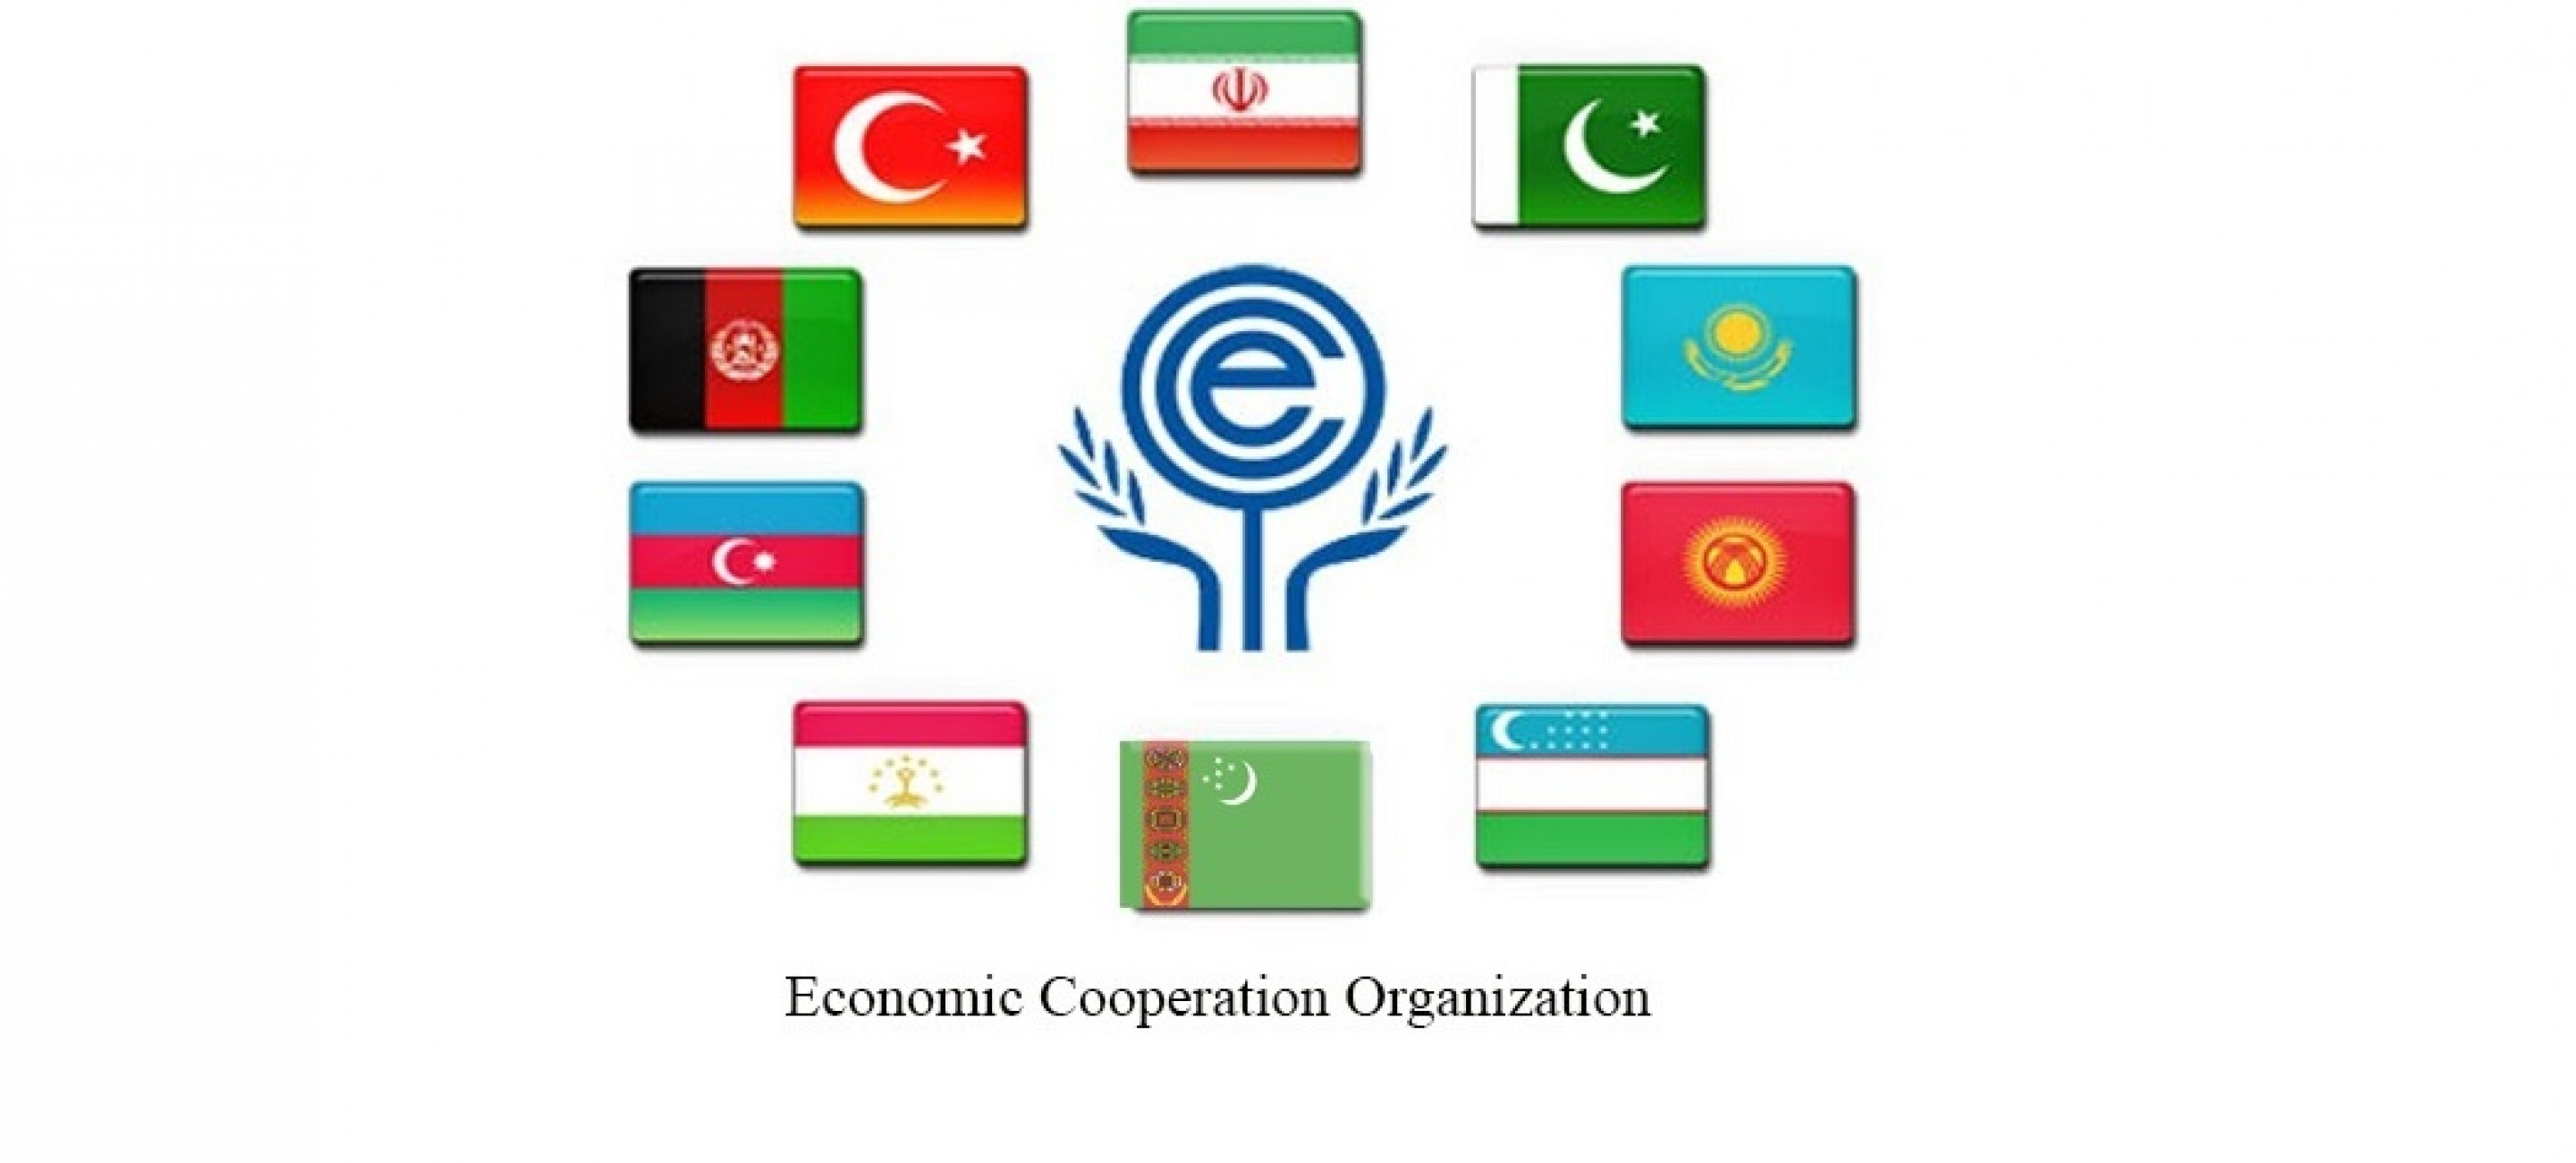 President Gurbanguly Berdimuhamedov participated in the Summit of the ECO in Islamabad